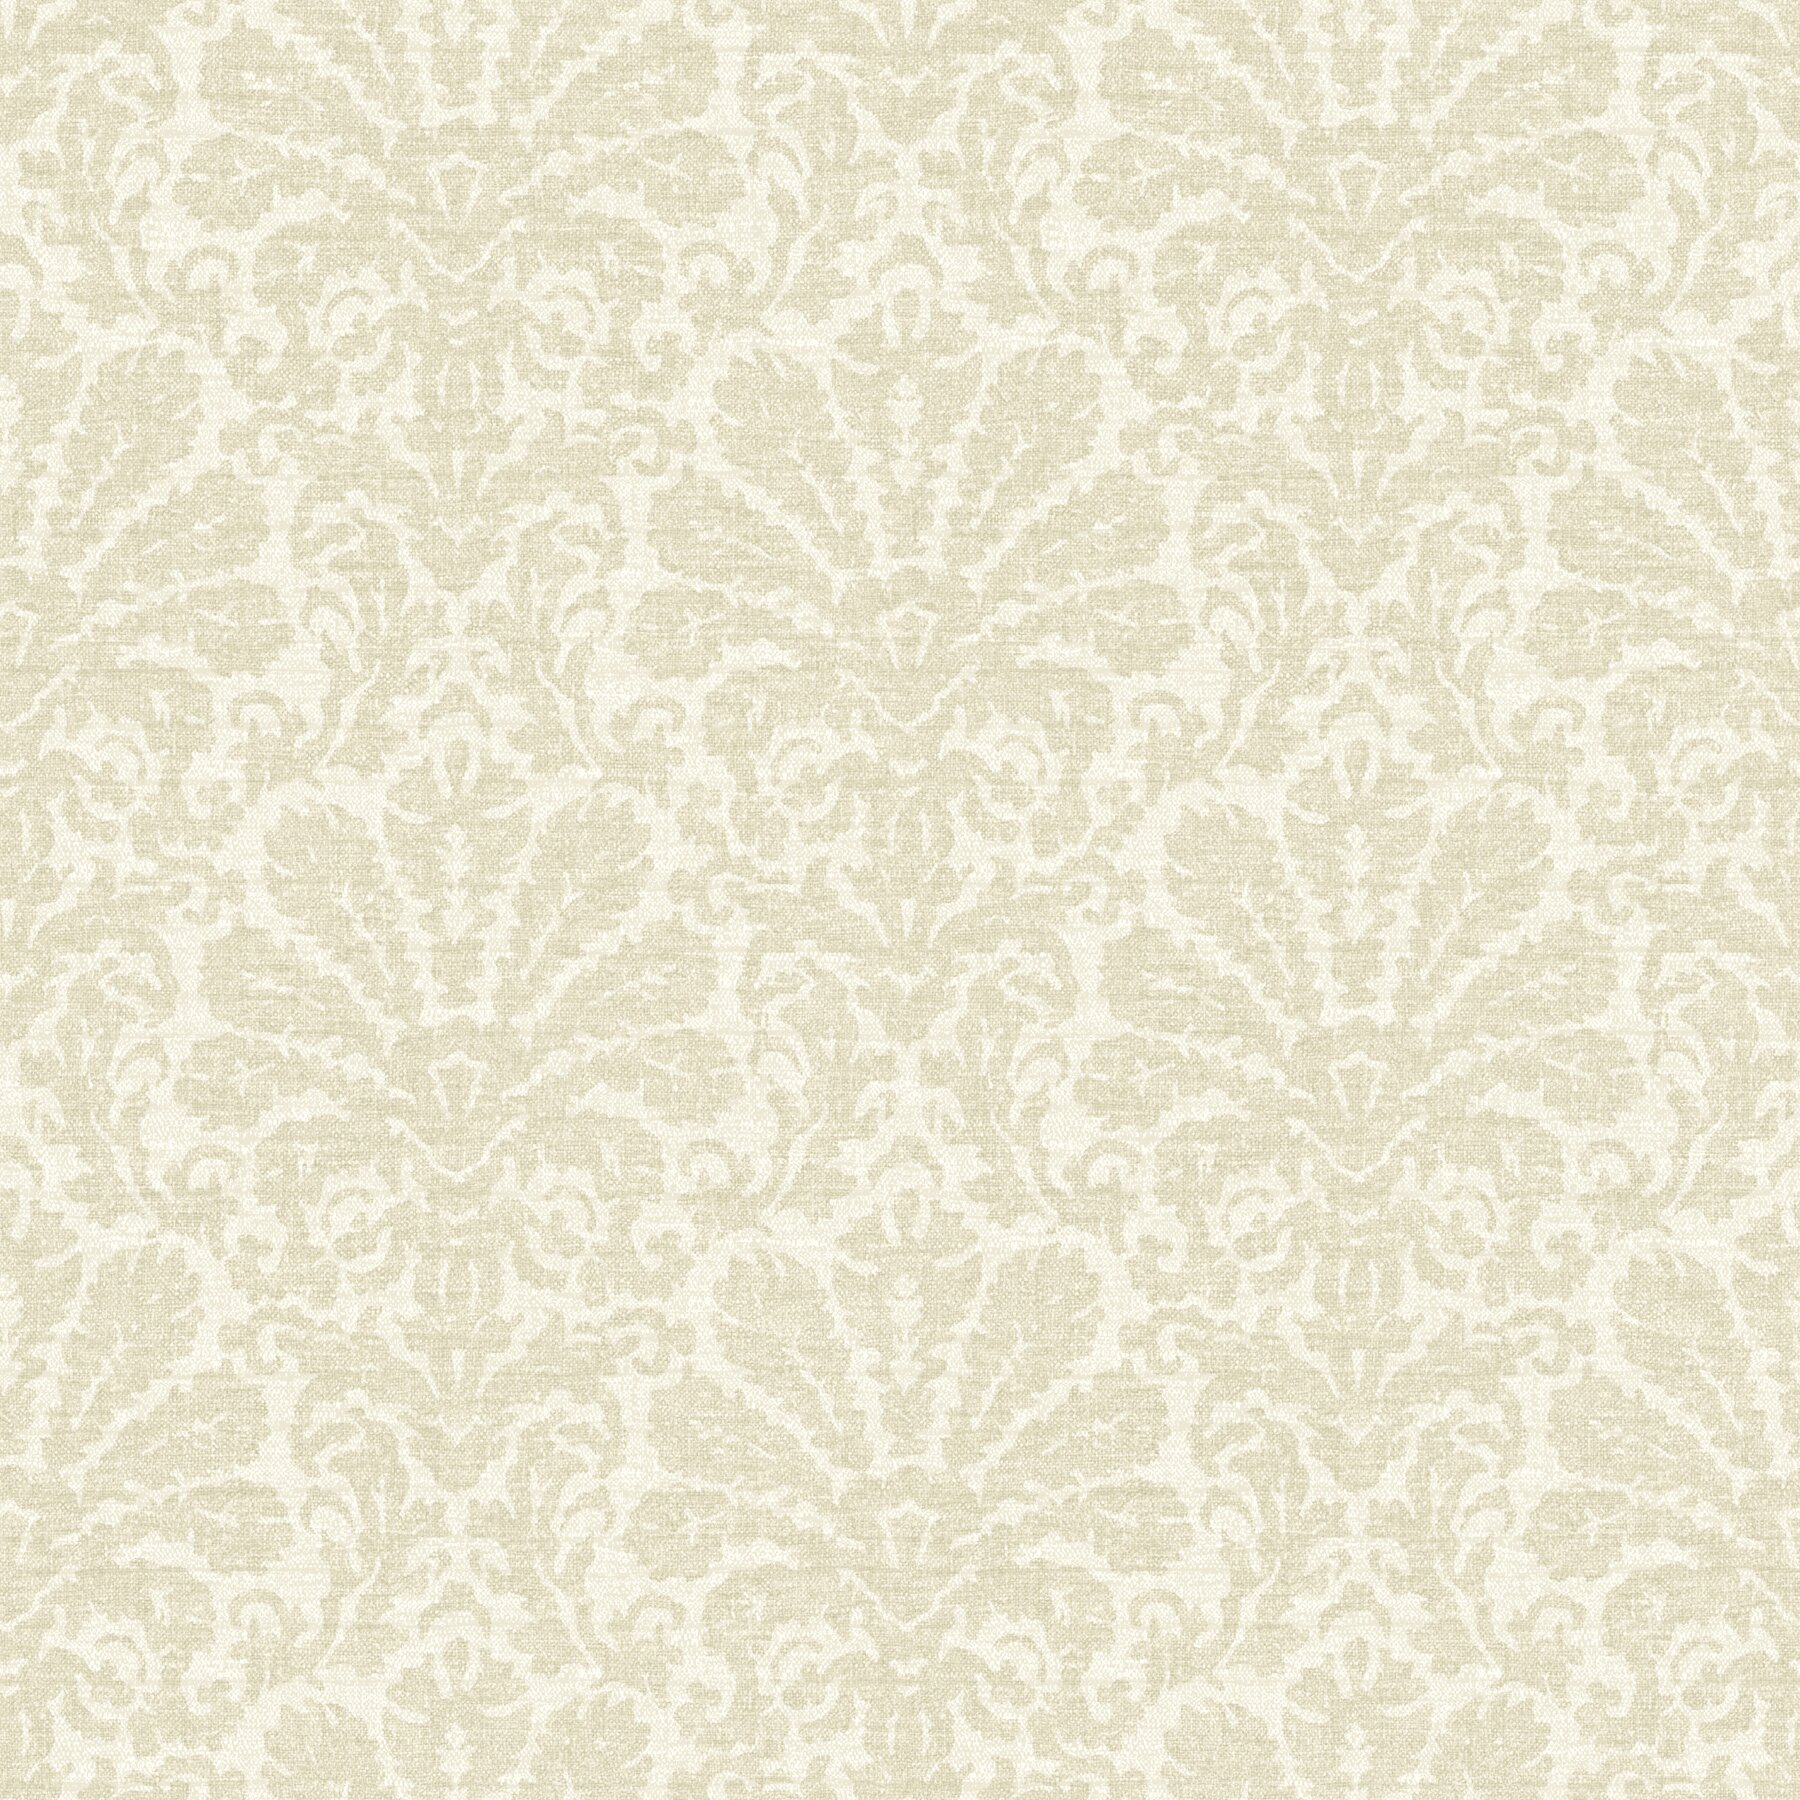 Brewster home fashions sand dollar seascape 33 39 x 20 5 for 3d embossed wallpaper